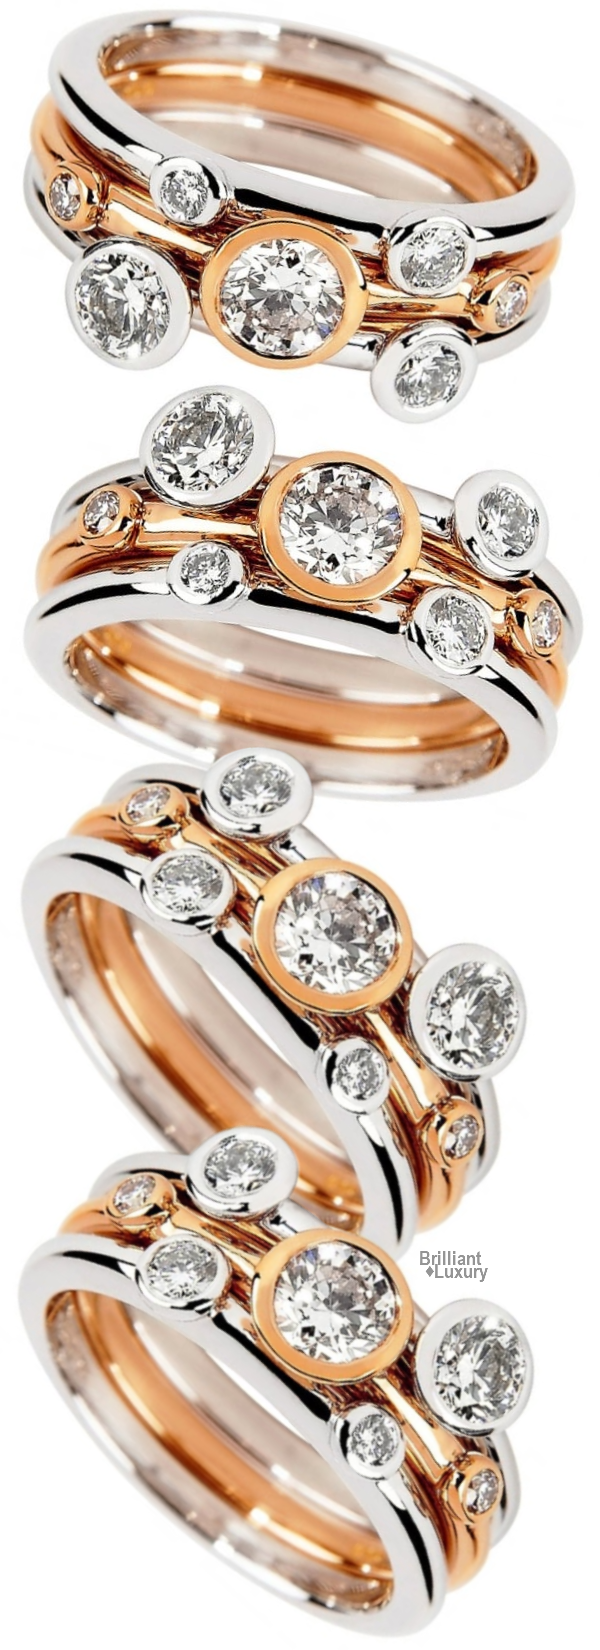 Berry's Lucia 18ct White & Rose Gold Three Band Dress Ring